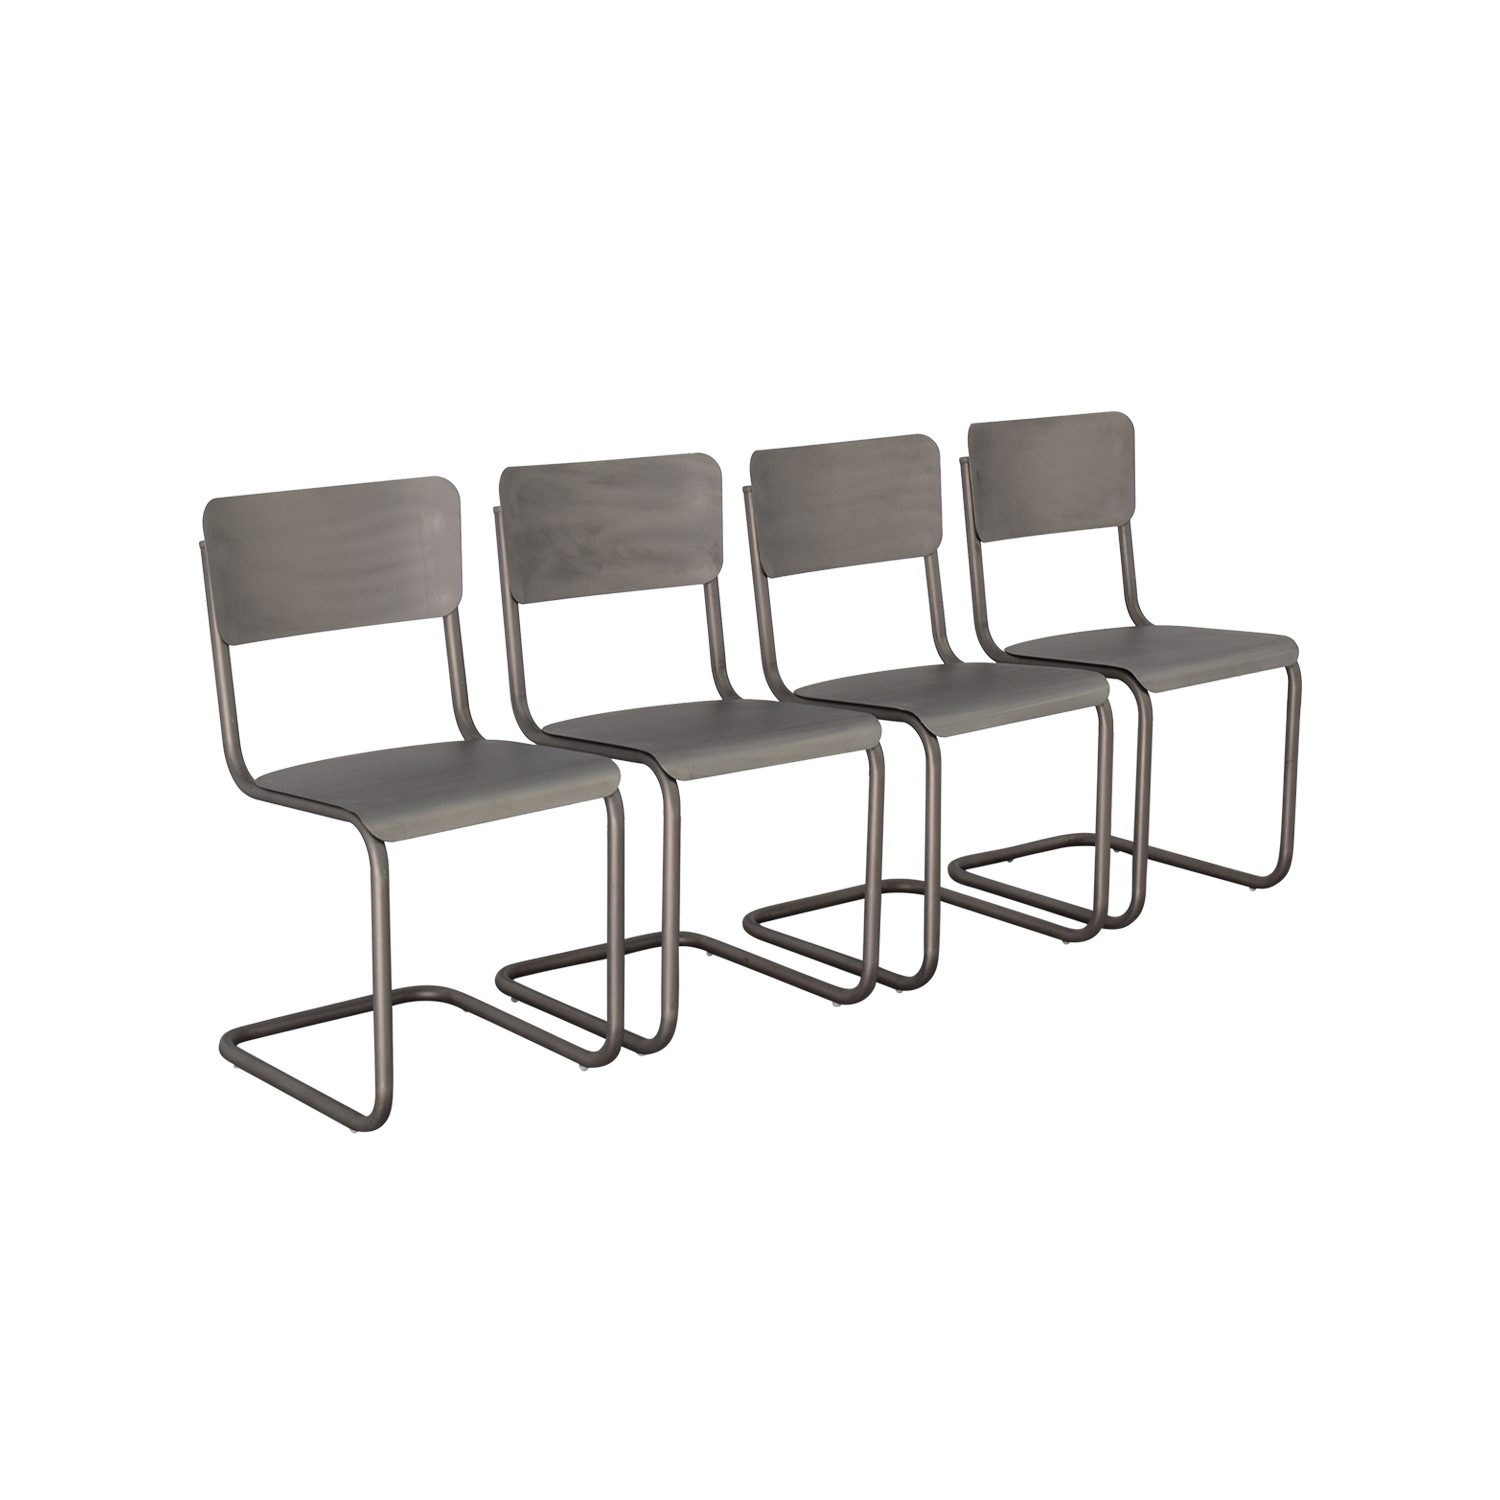 Used Restoration Hardware Dining Table Image collections  : used restoration hardware metal dining chairs from sorahana.info size 1500 x 1500 jpeg 344kB